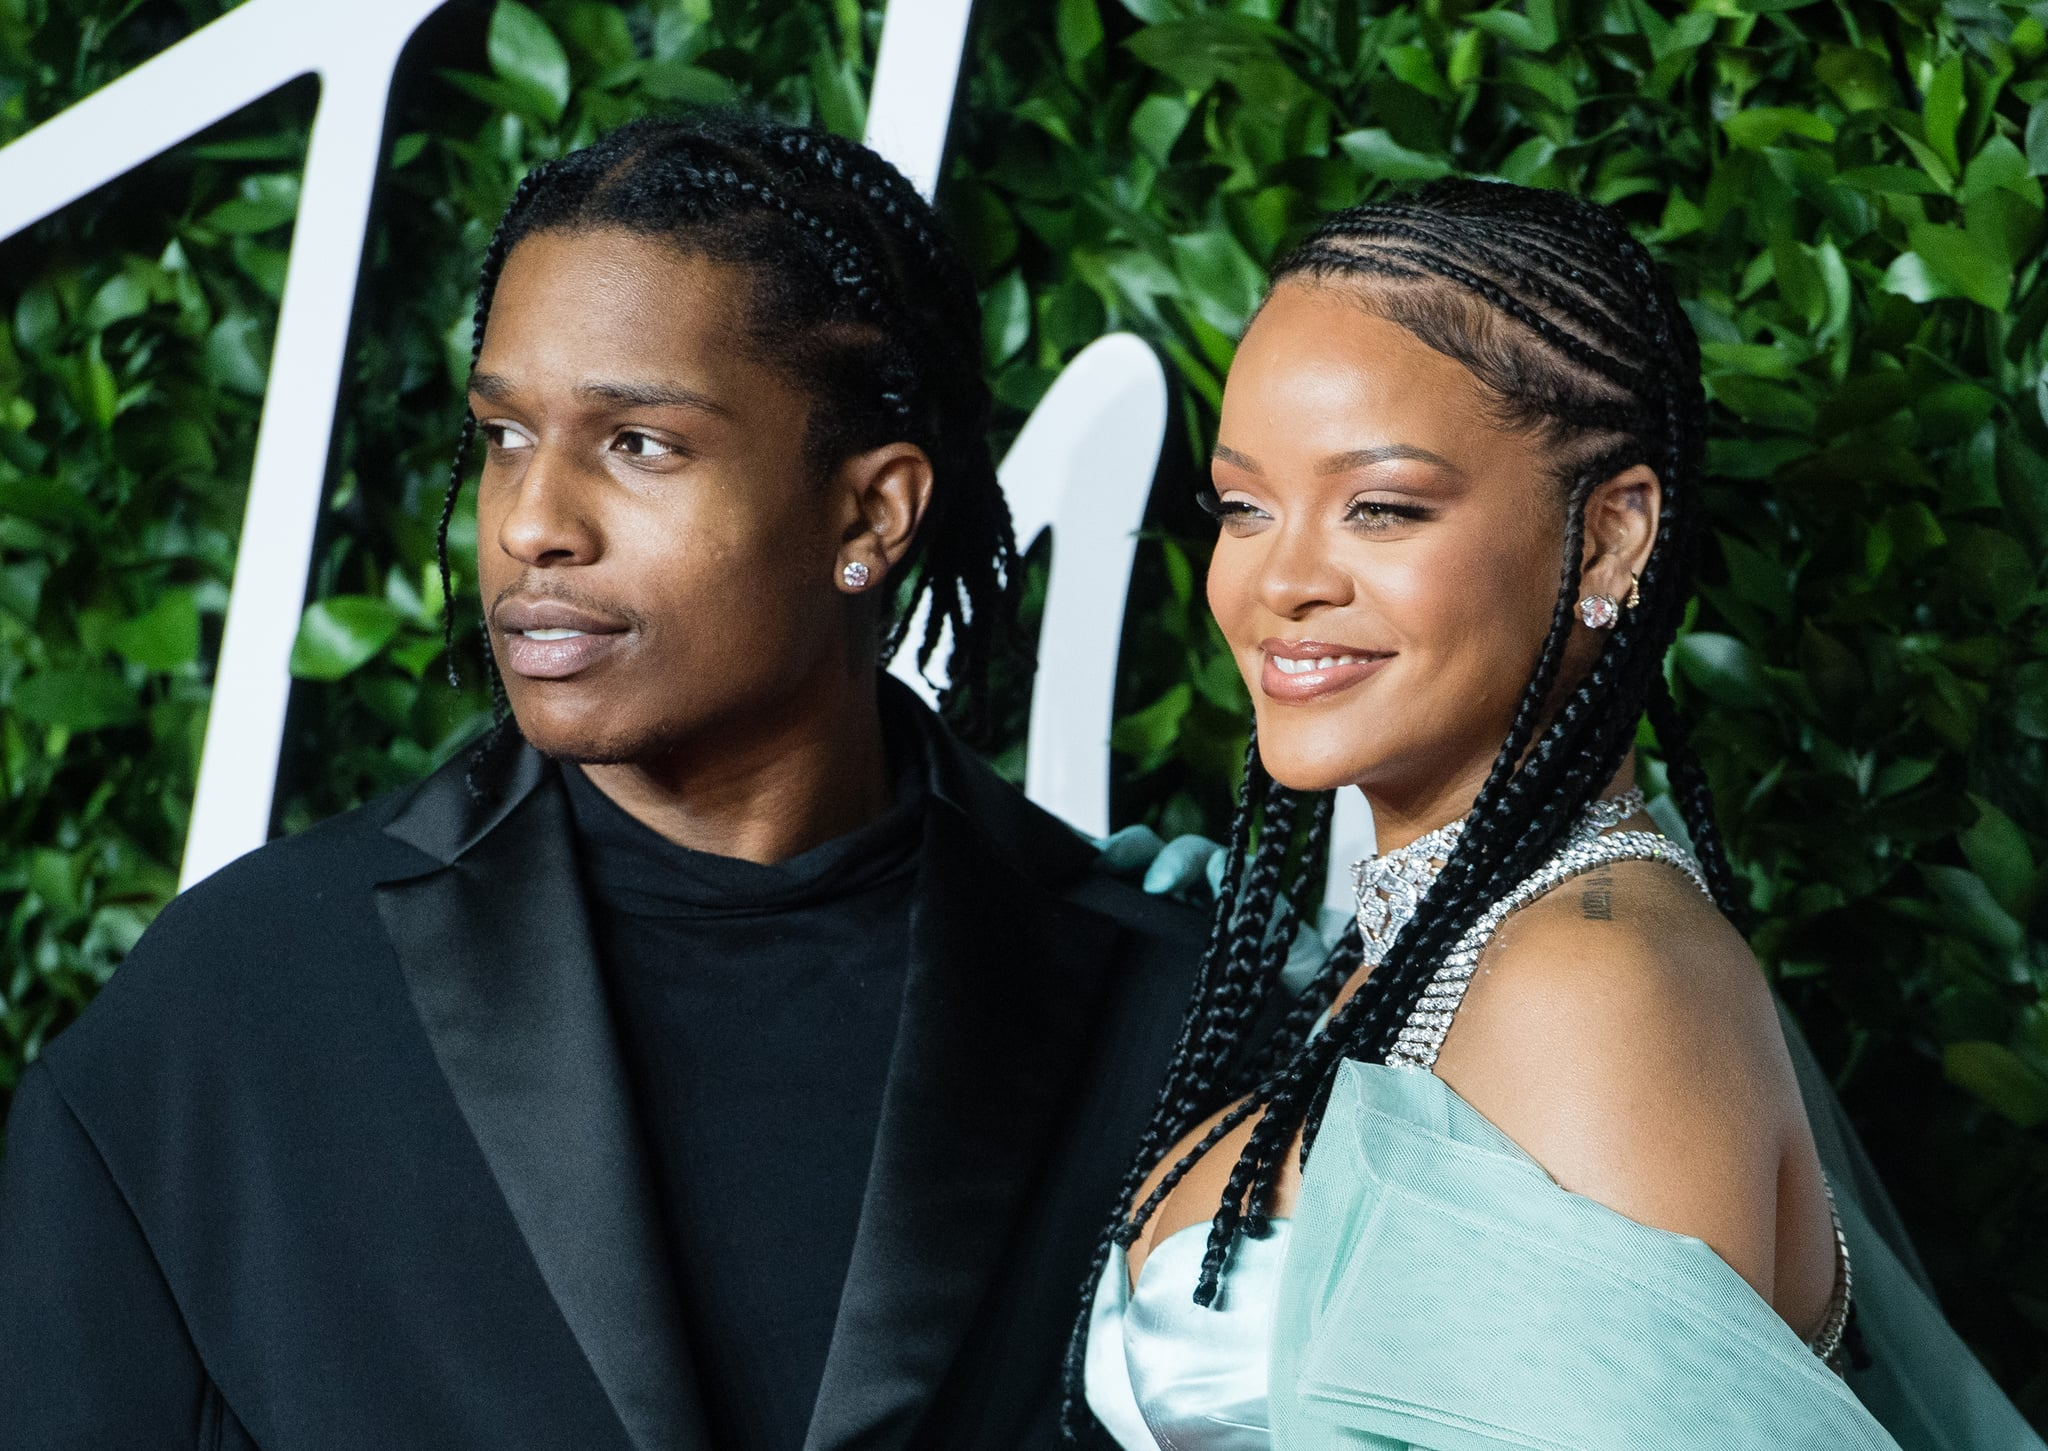 LONDON, ENGLAND - DECEMBER 02:  Rihanna and ASAP Rocky arrive at The Fashion Awards 2019 held at Royal Albert Hall on December 02, 2019 in London, England. (Photo by Samir Hussein/WireImage)